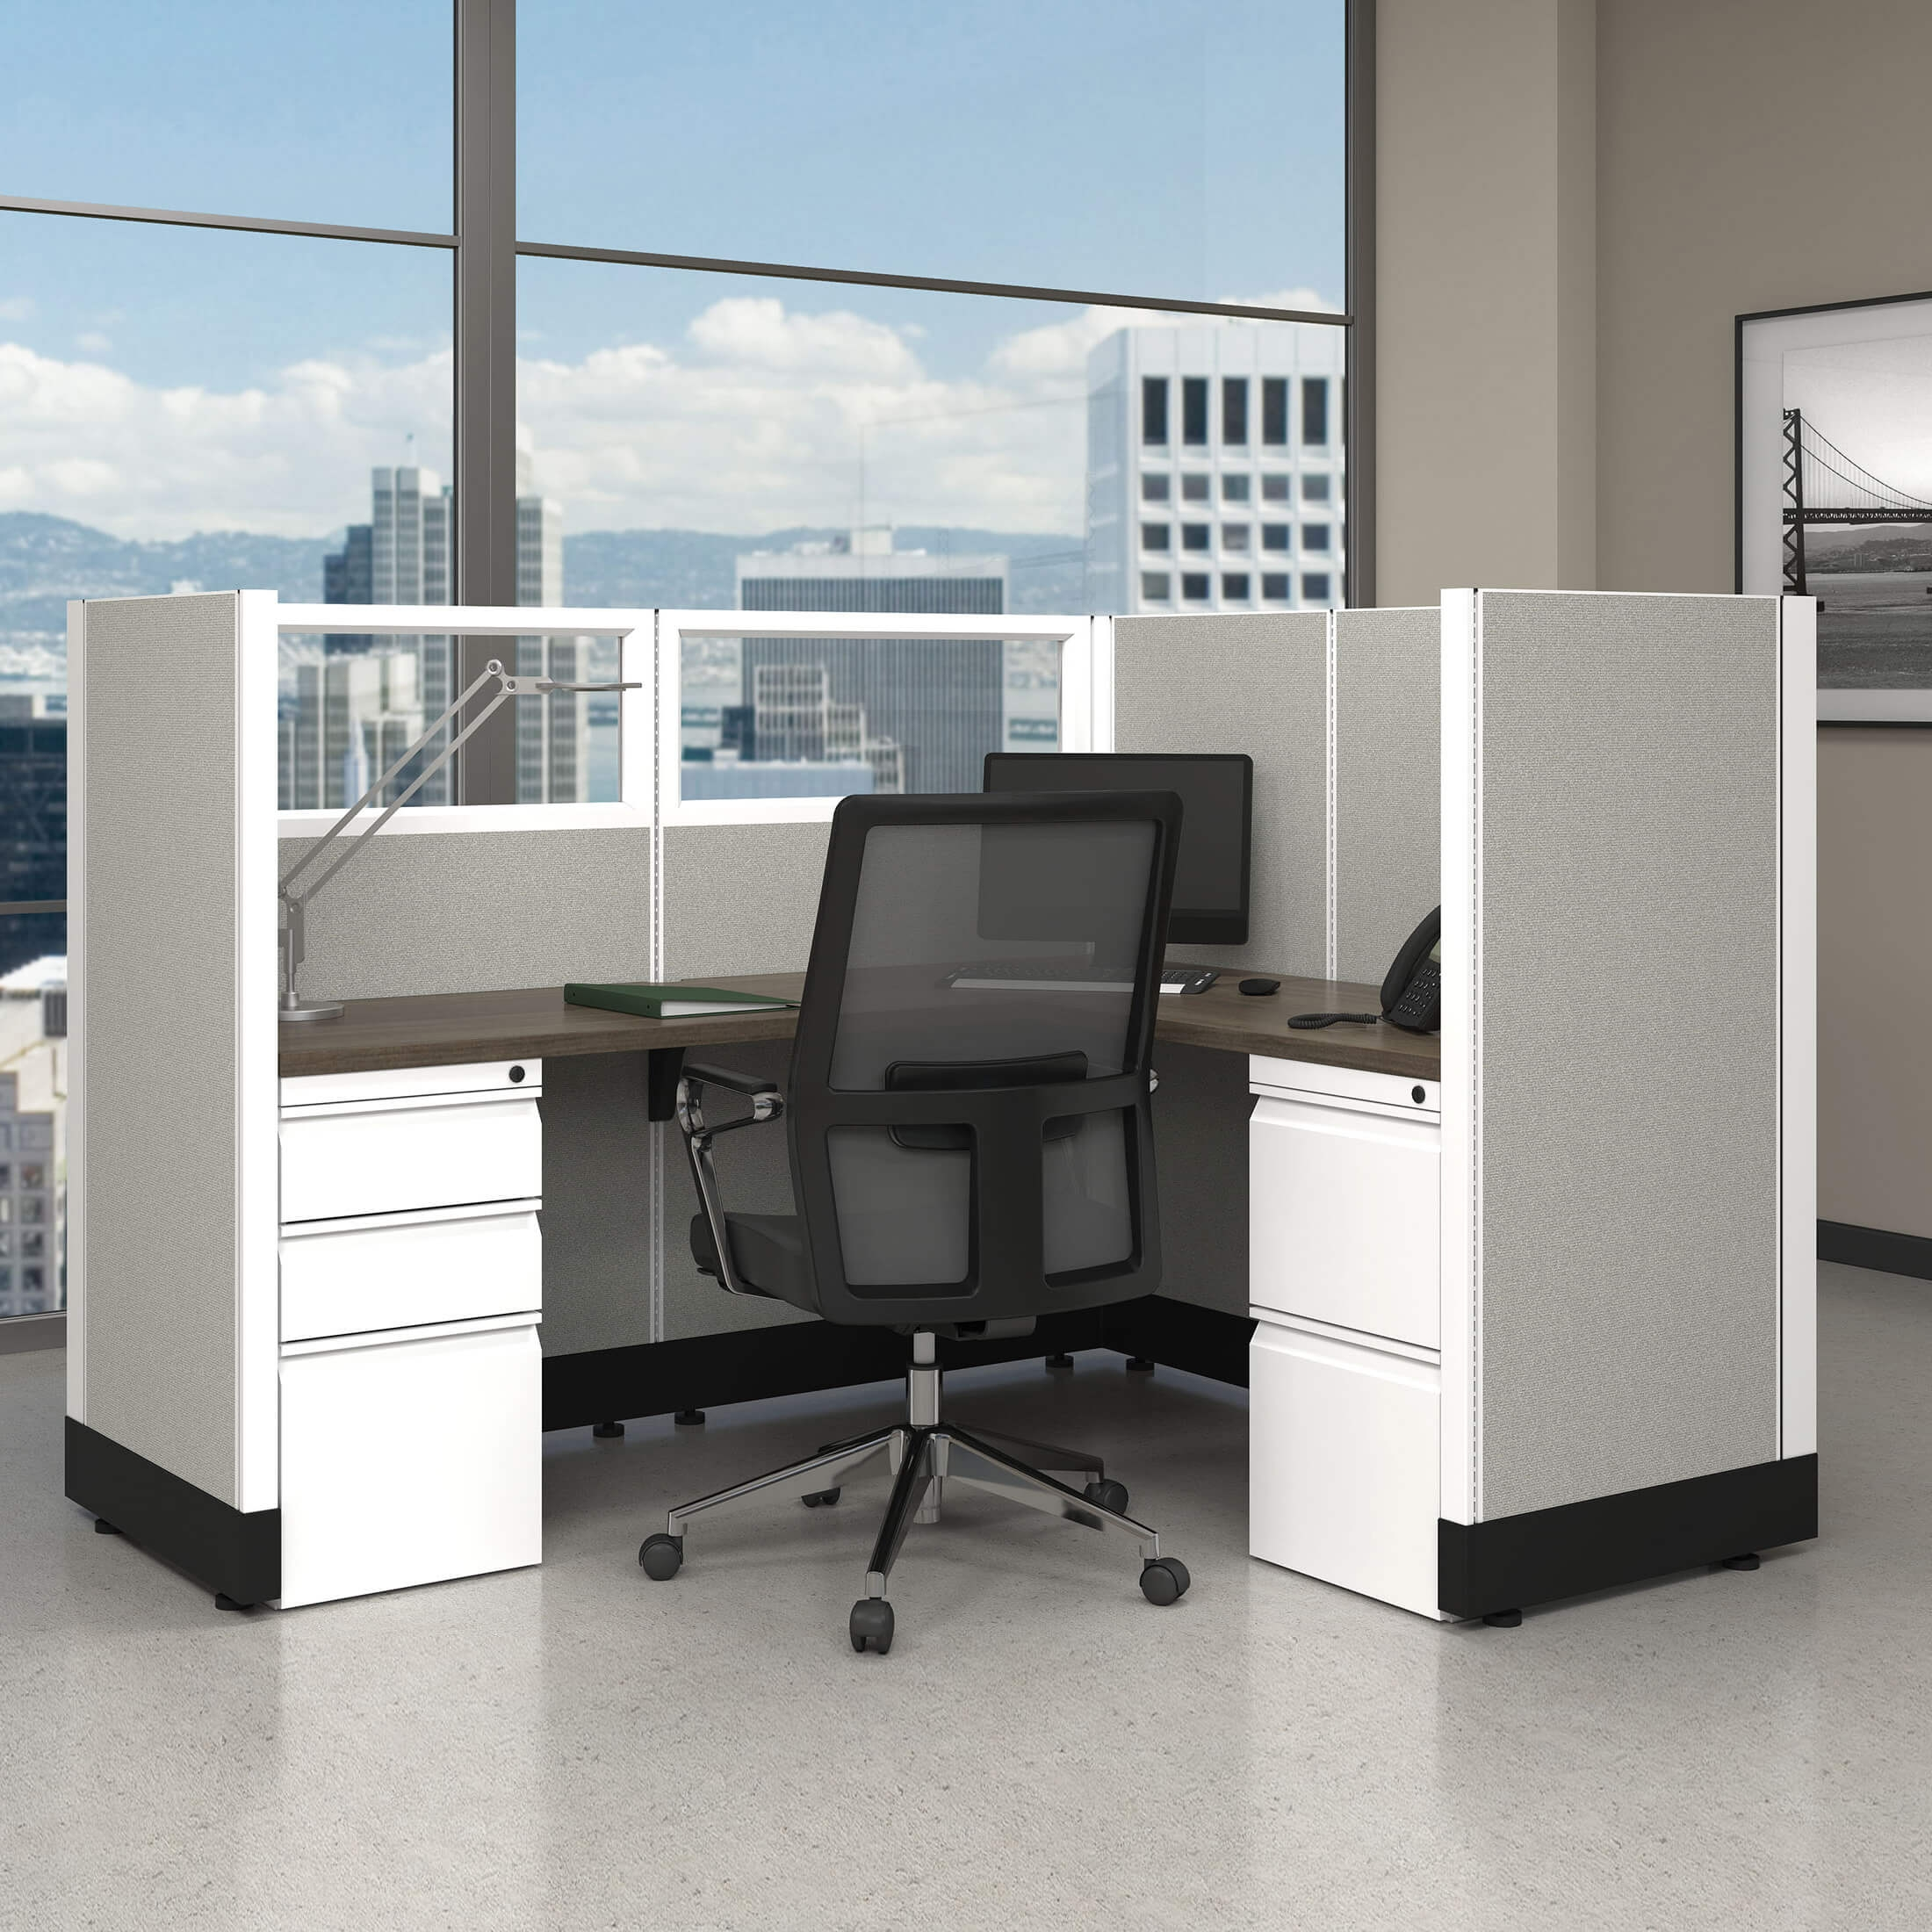 Modular Office Furniture Systems 53H Unpowered